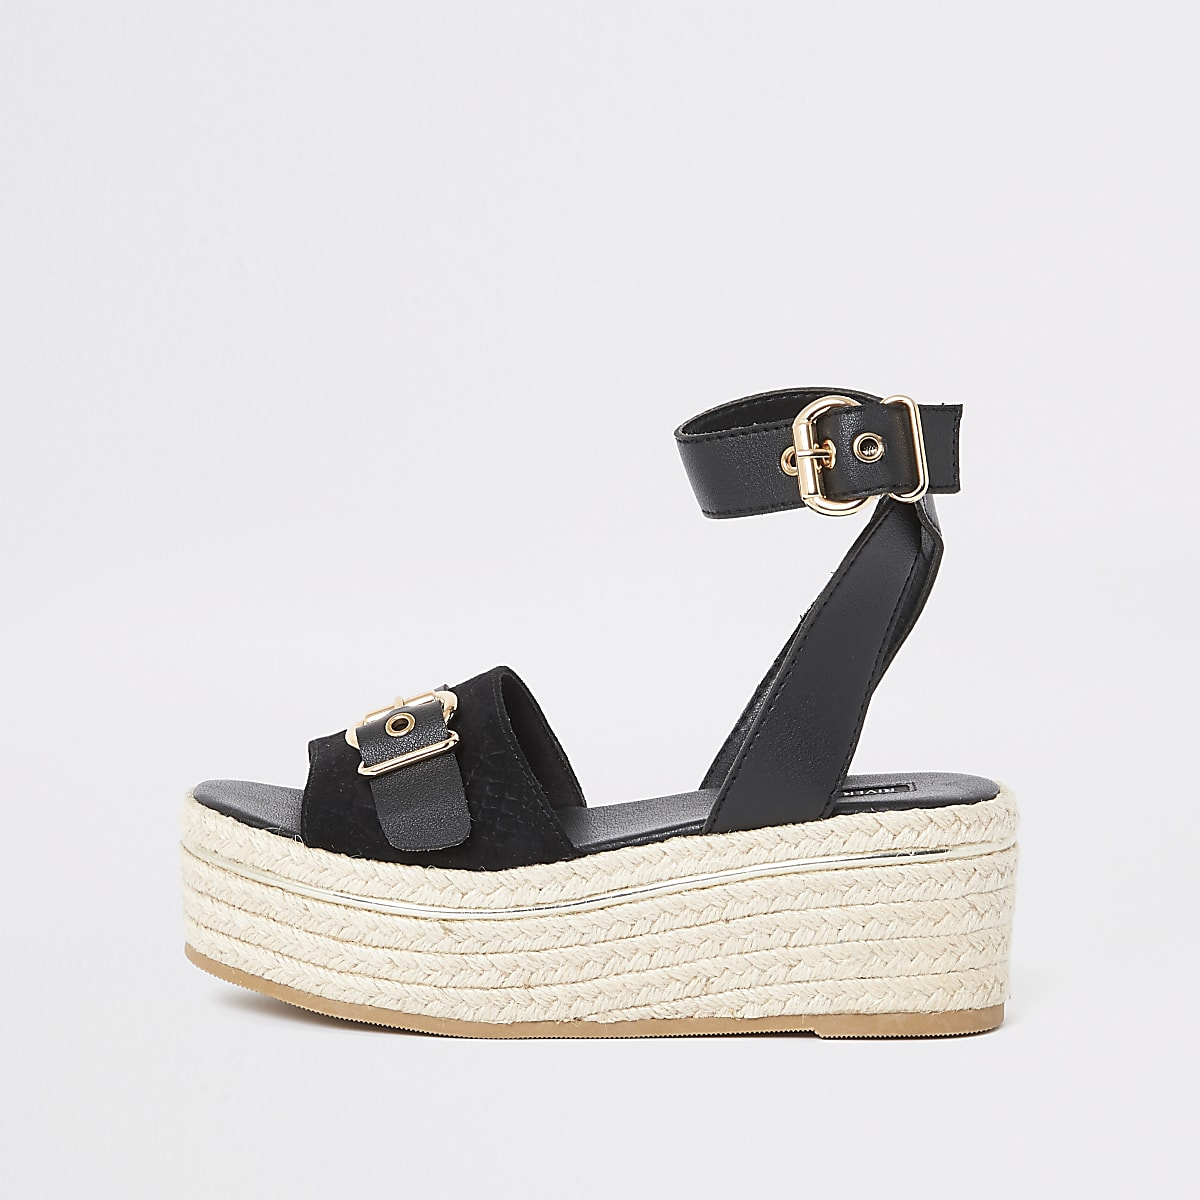 3730d896585 Black espadrille wide fit flatform sandals - Sandals - Shoes   Boots - women